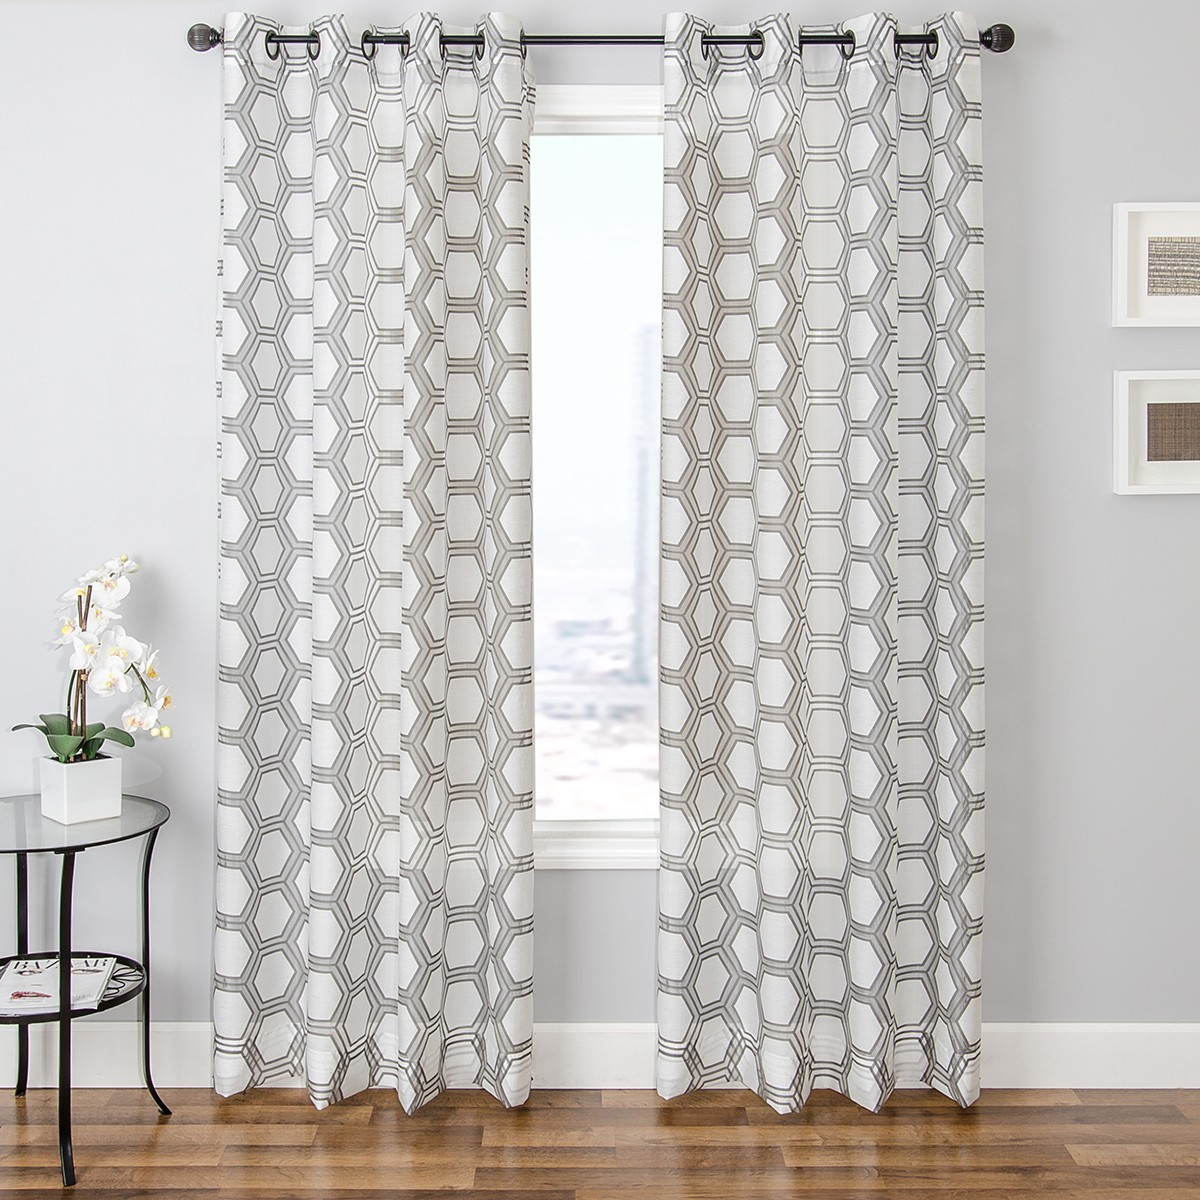 Http Homesfeed Com White Patterned Curtains 2